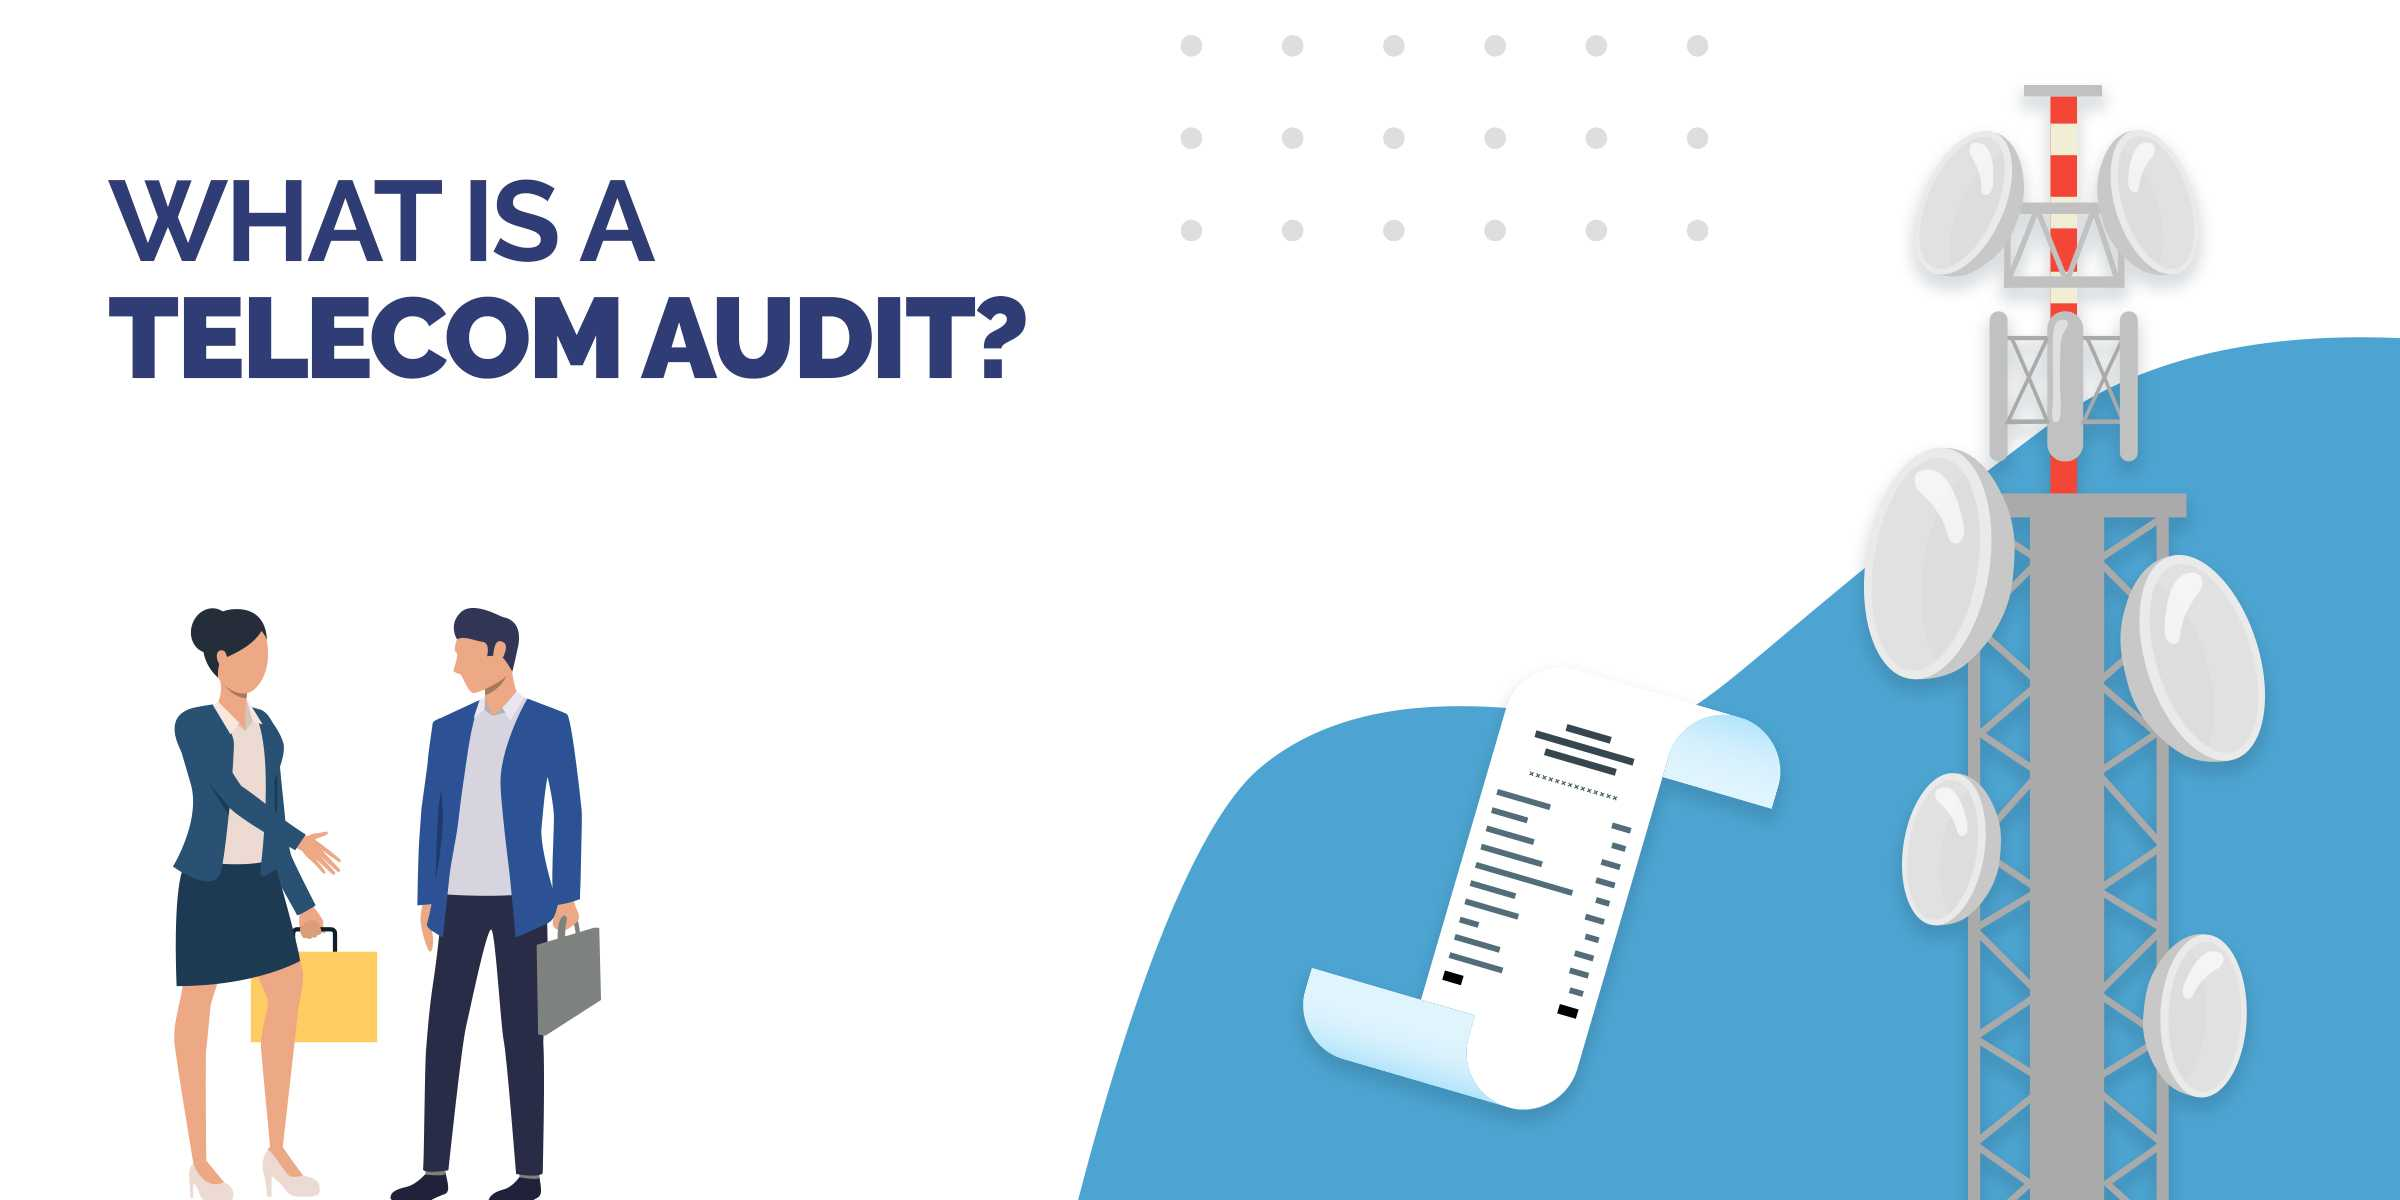 What is a Telecom Audit?